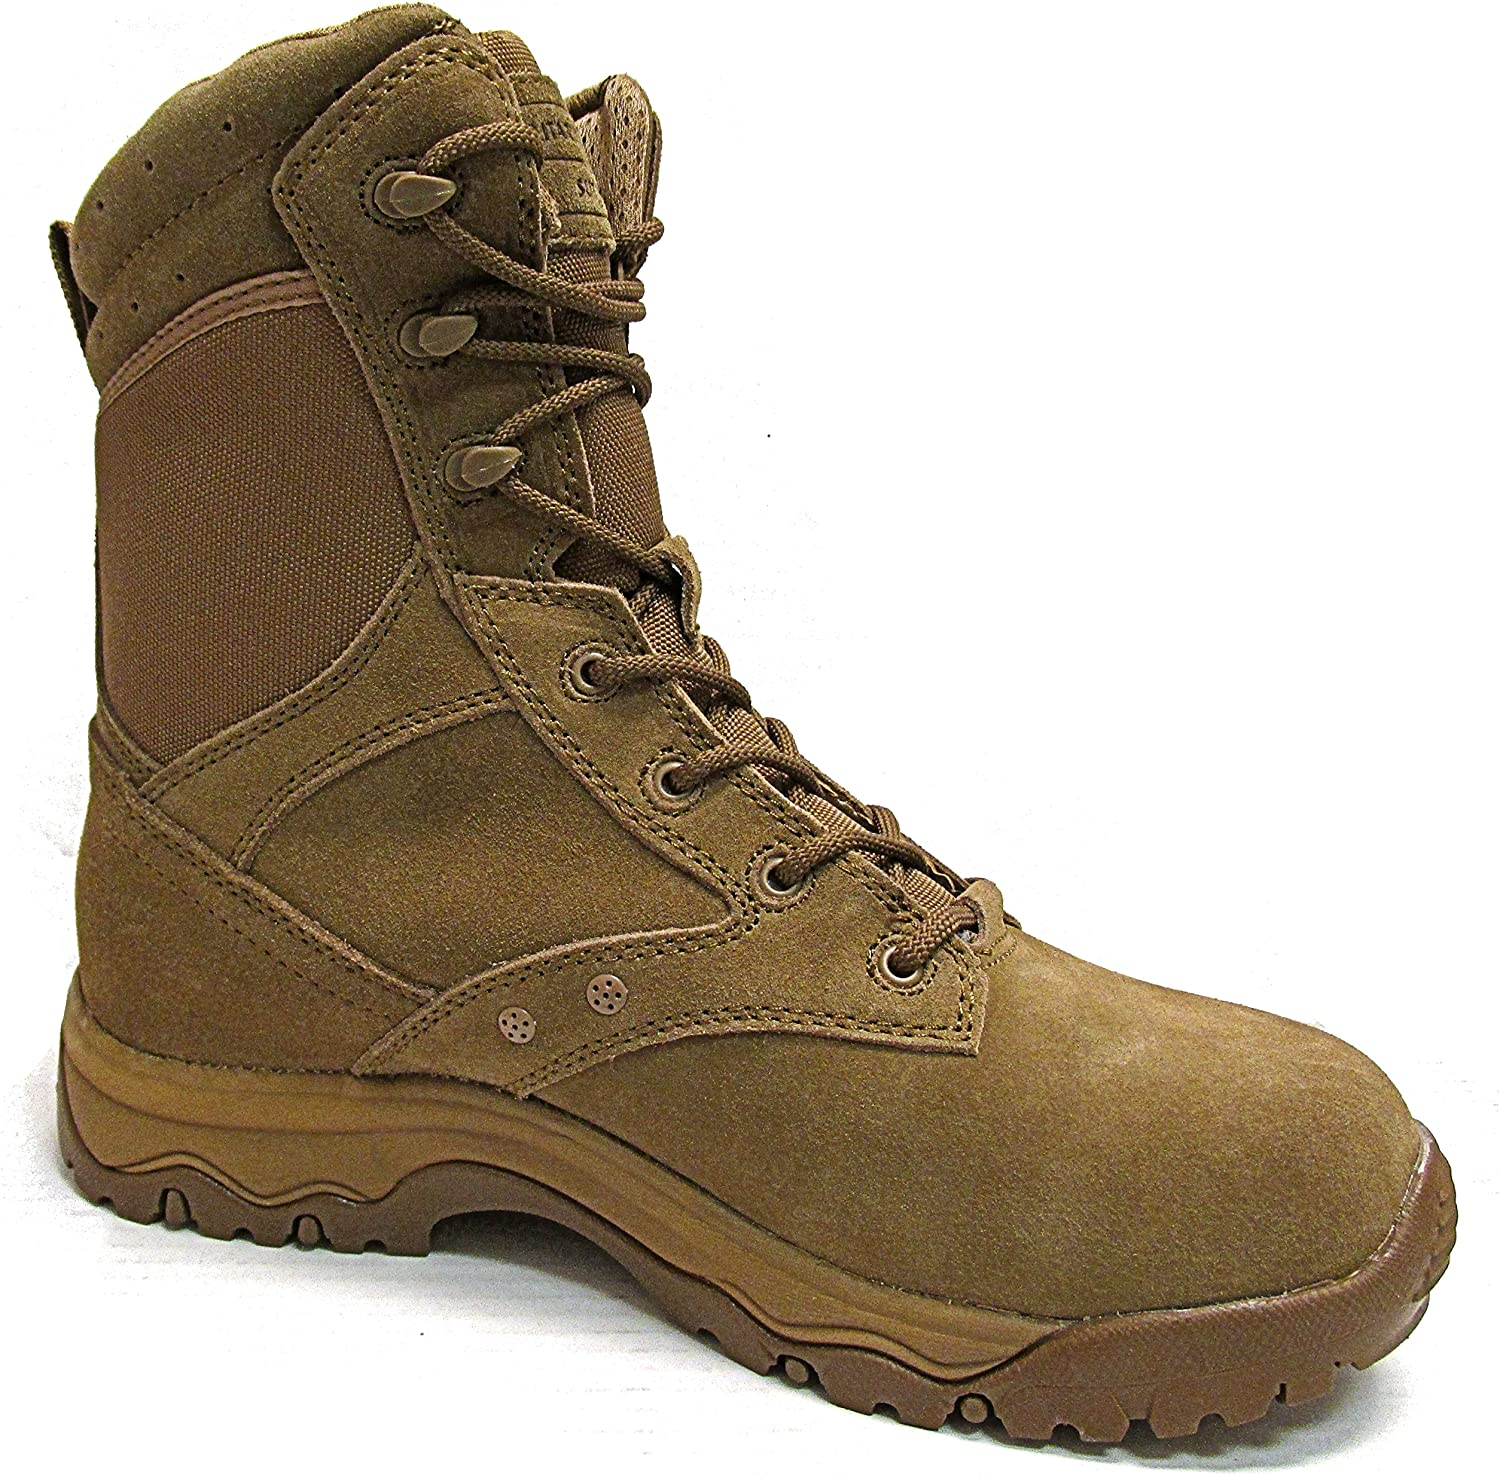 Military Uniform Supply OCP Tactical Boots - Coyote